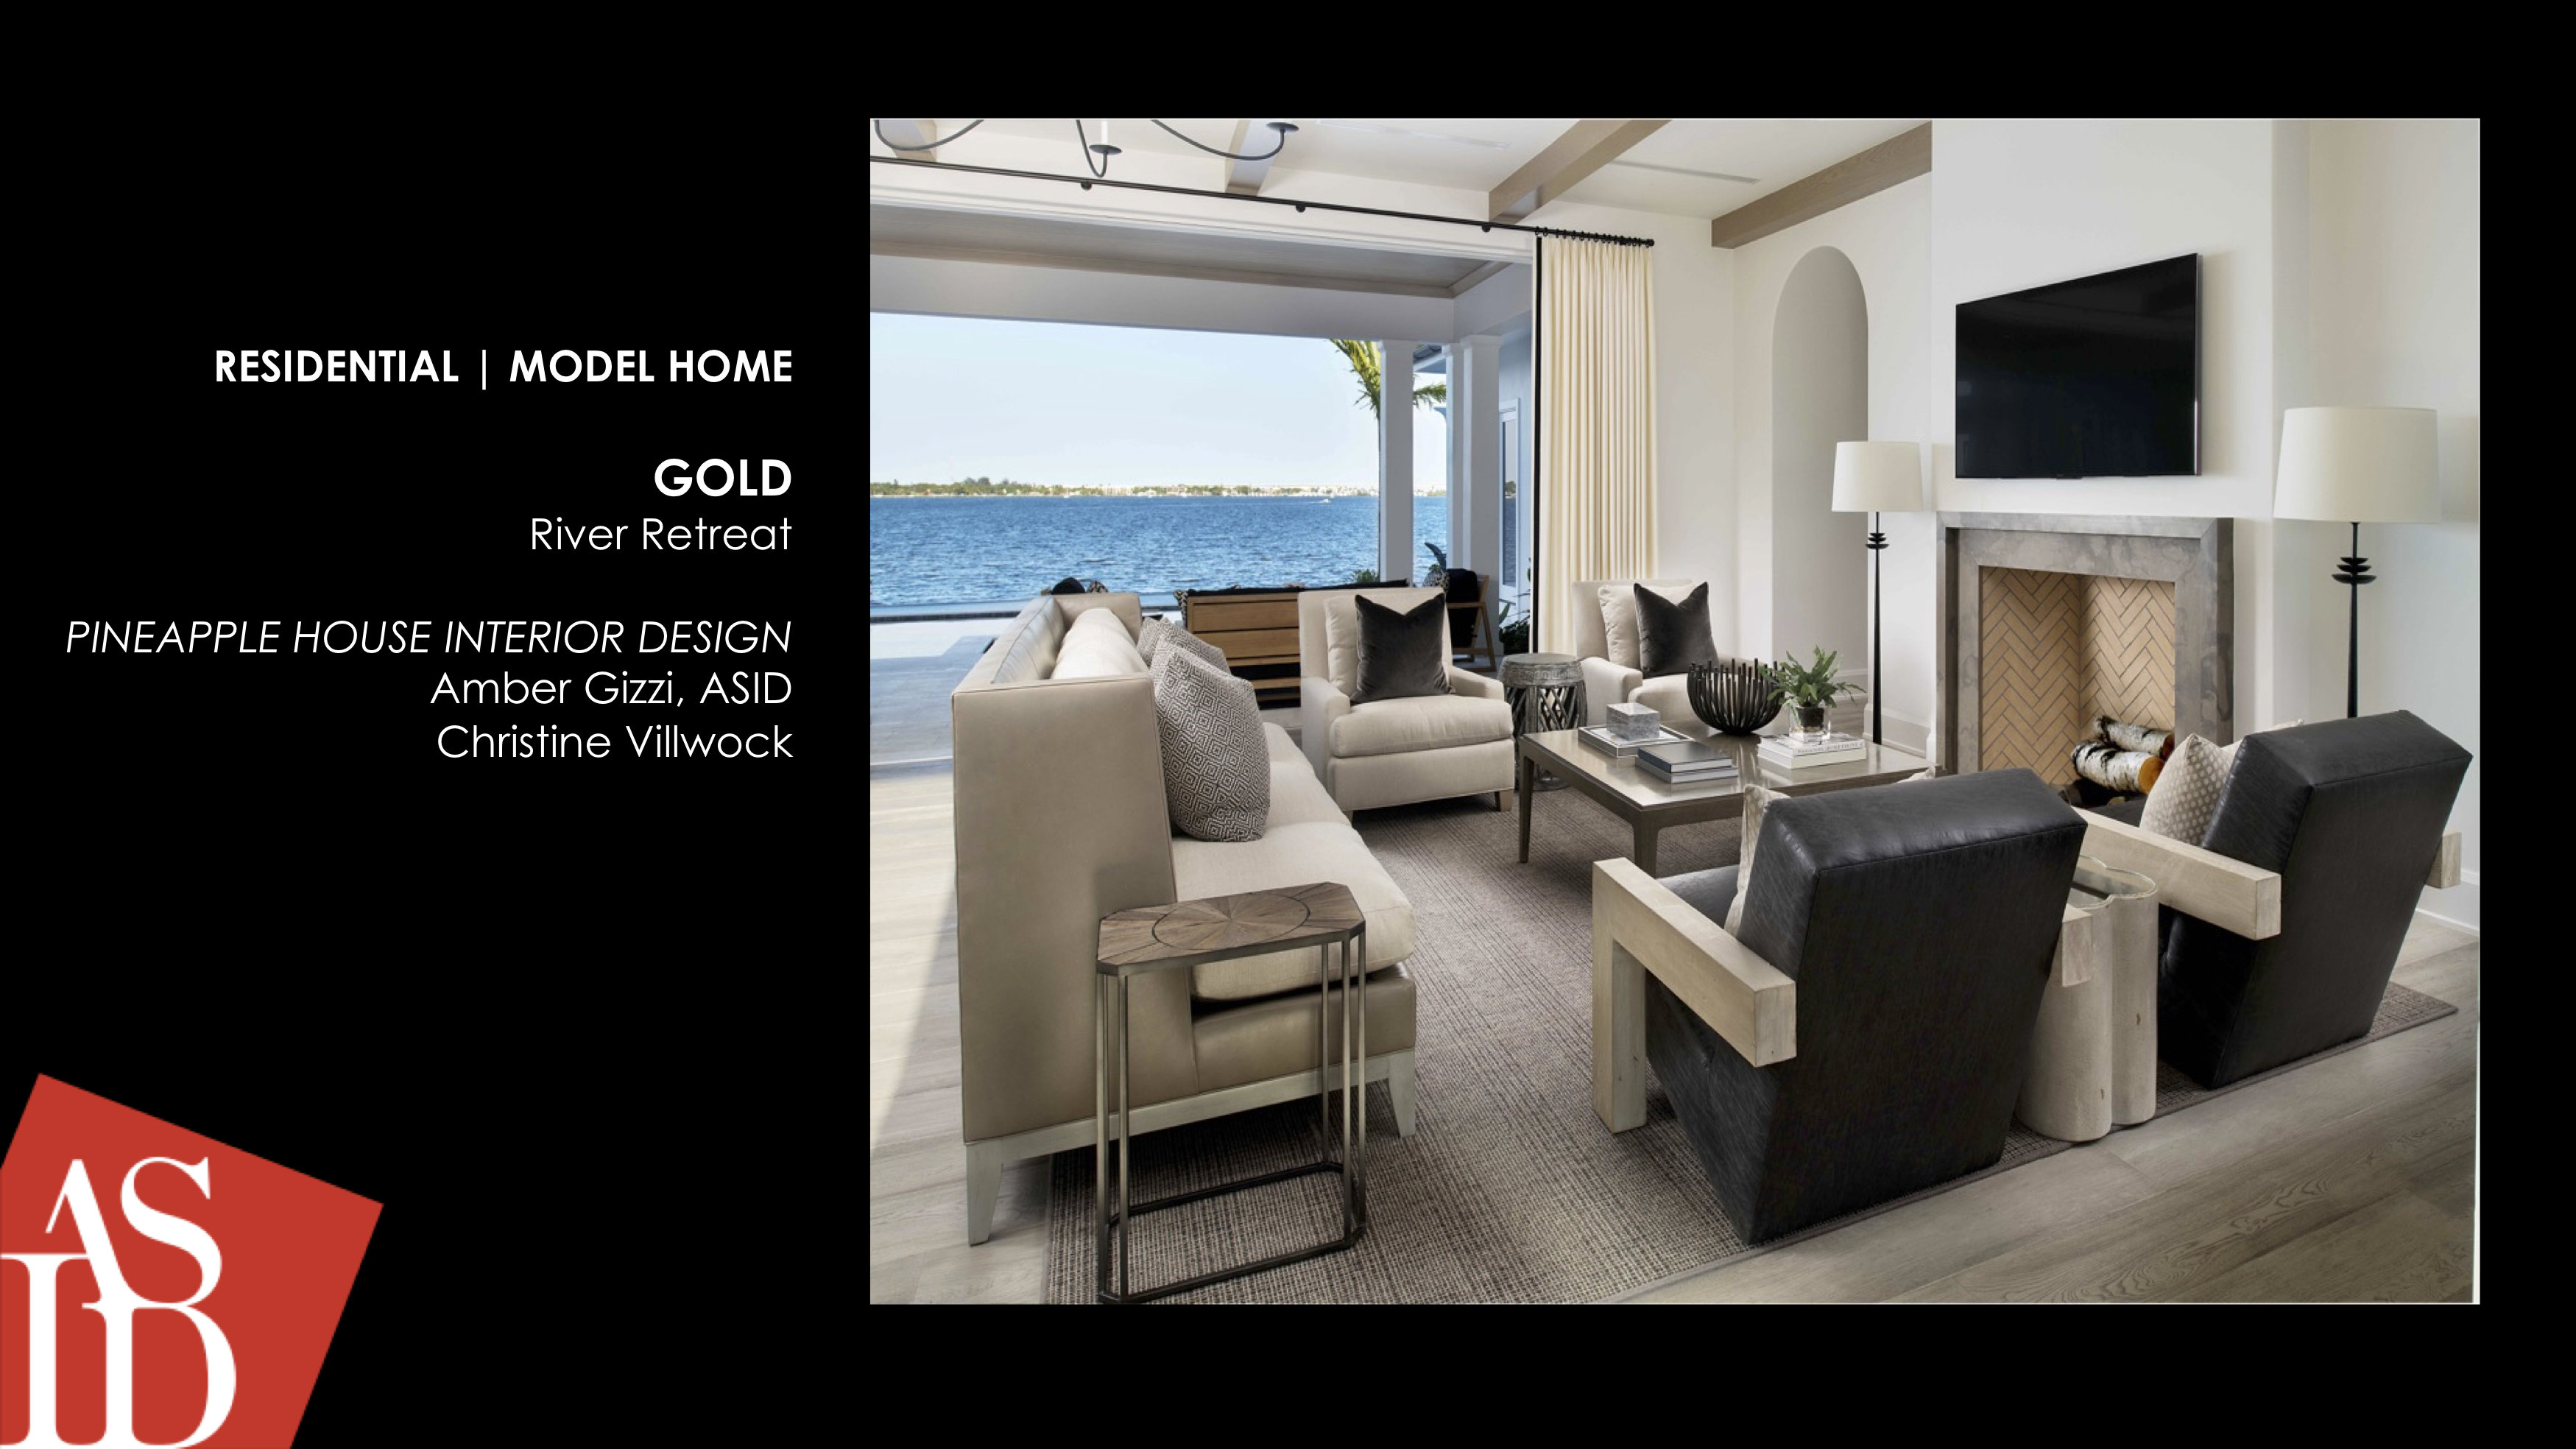 MODEL HOME | GOLD